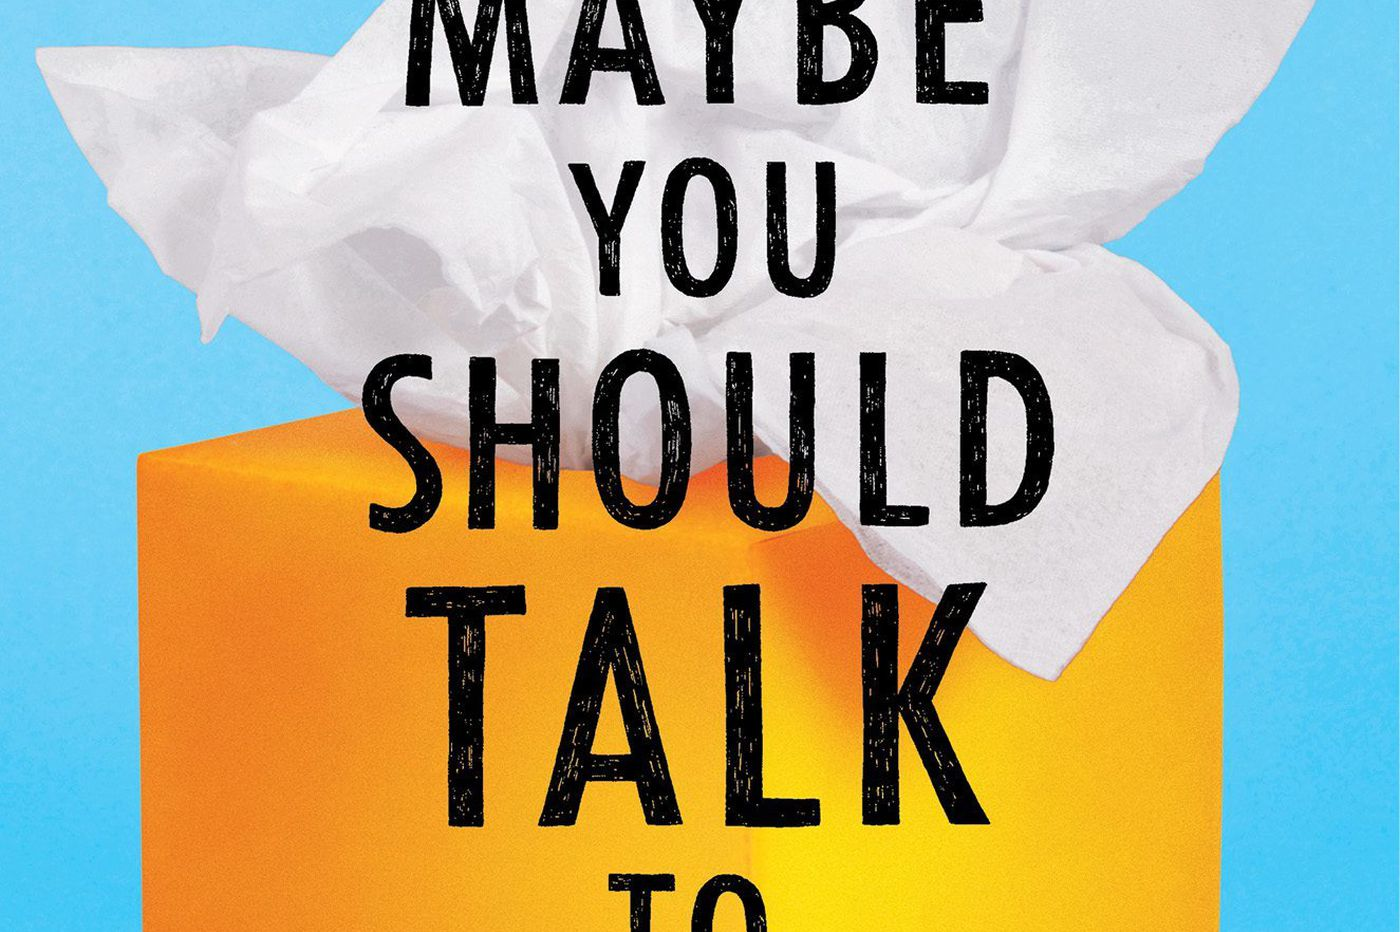 What does your therapist really think of you? One doc bares it all in a new book. | Book review